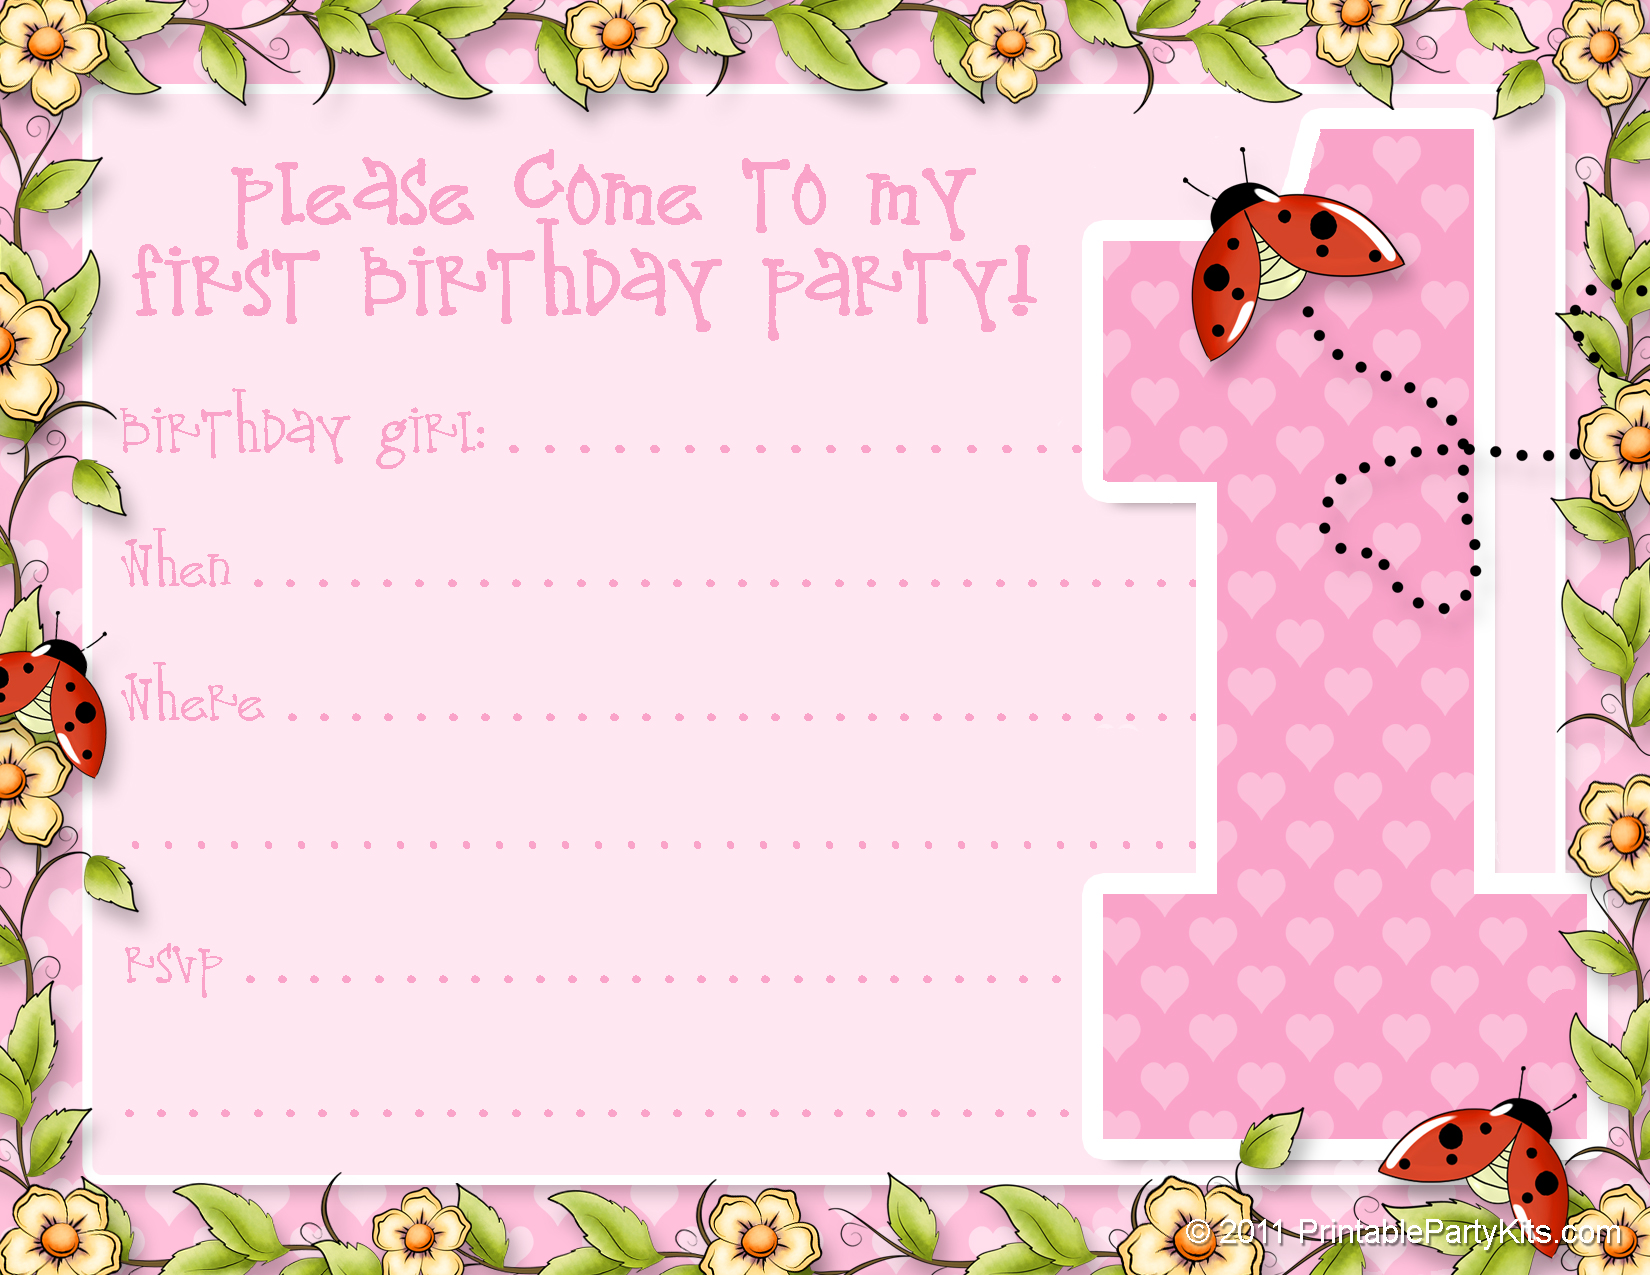 You Might Also Like These Other Free Birthday Printables For Kids:  Free Birthday Template Invitations